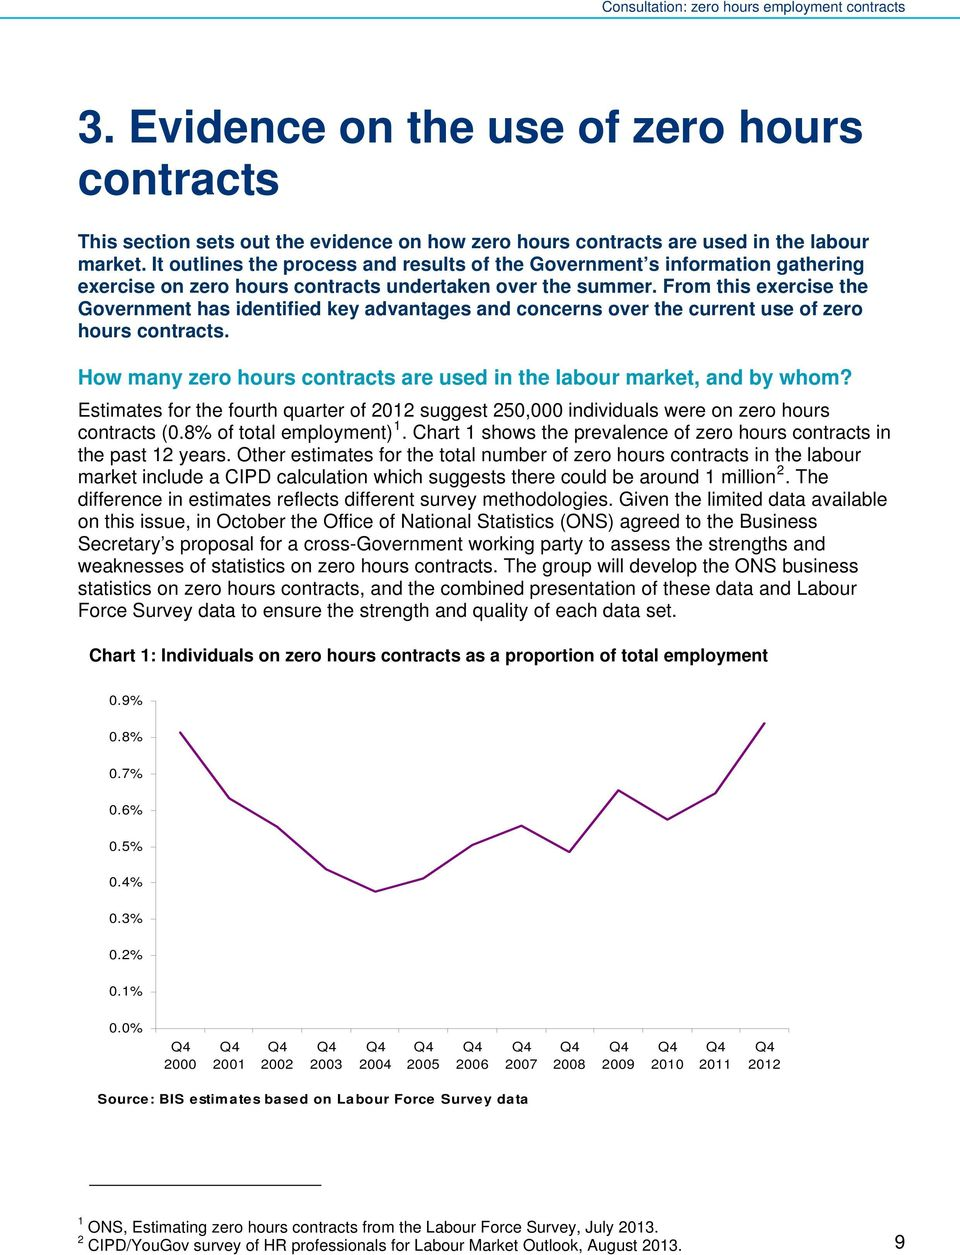 From this exercise the Government has identified key advantages and concerns over the current use of zero hours contracts. How many zero hours contracts are used in the labour market, and by whom?